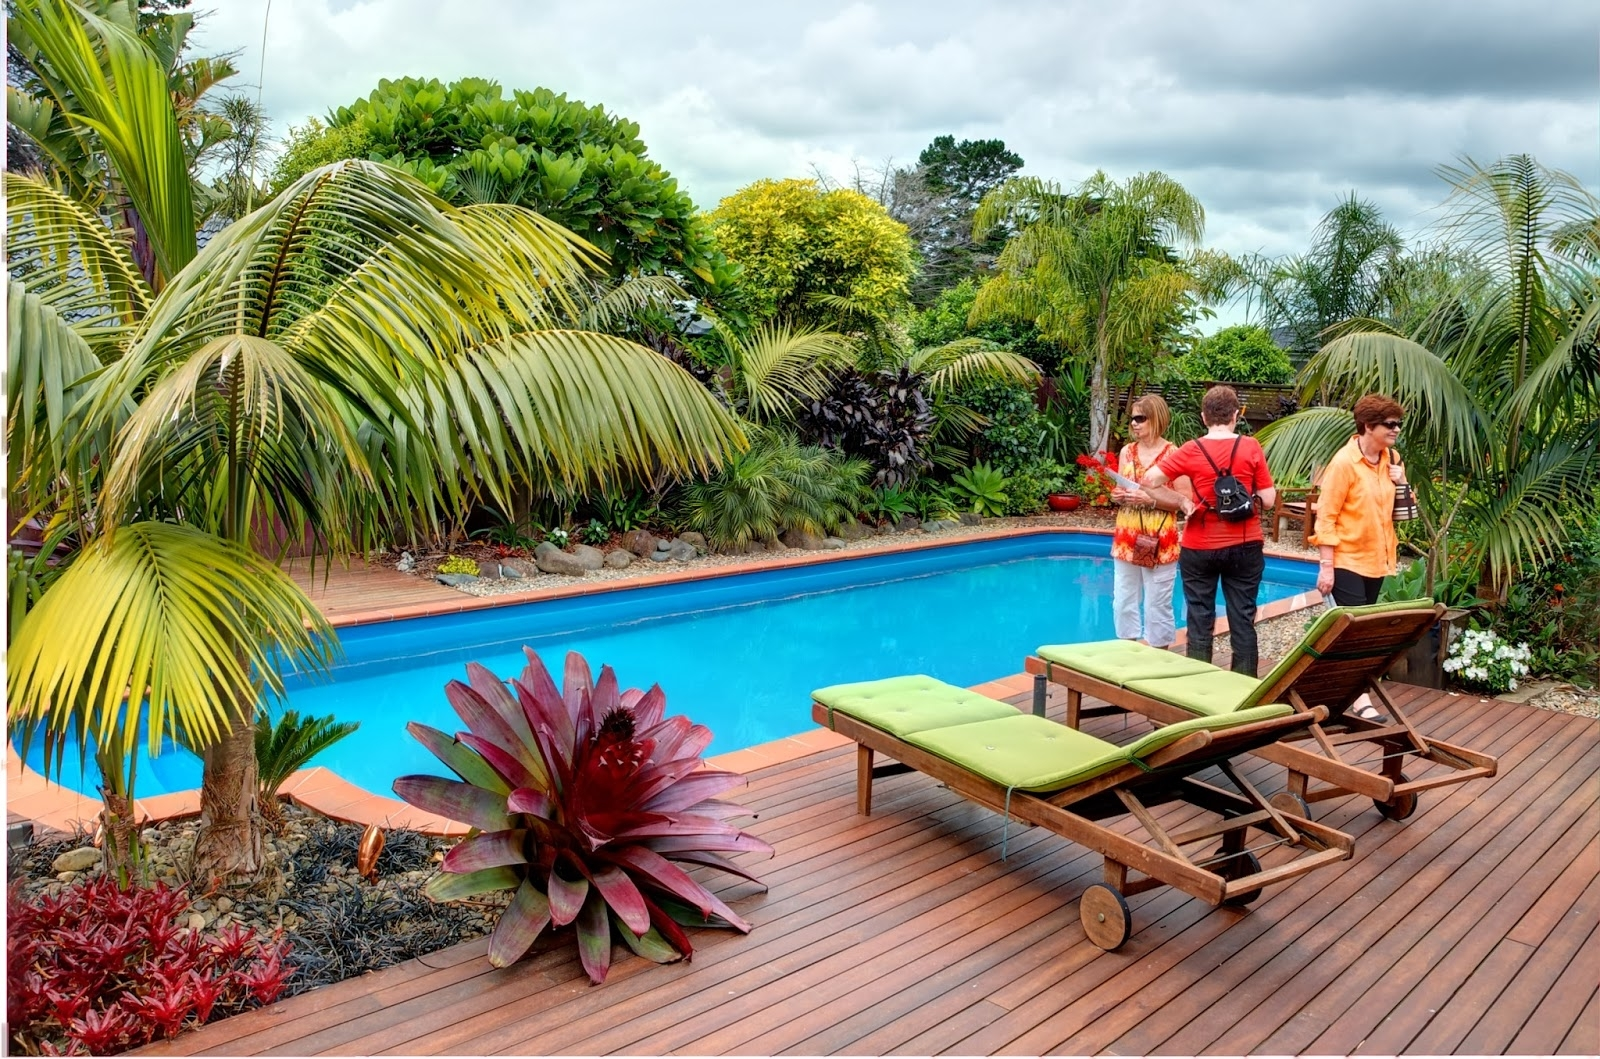 Tropical Plants In Modern Swimming Pool 9065 House